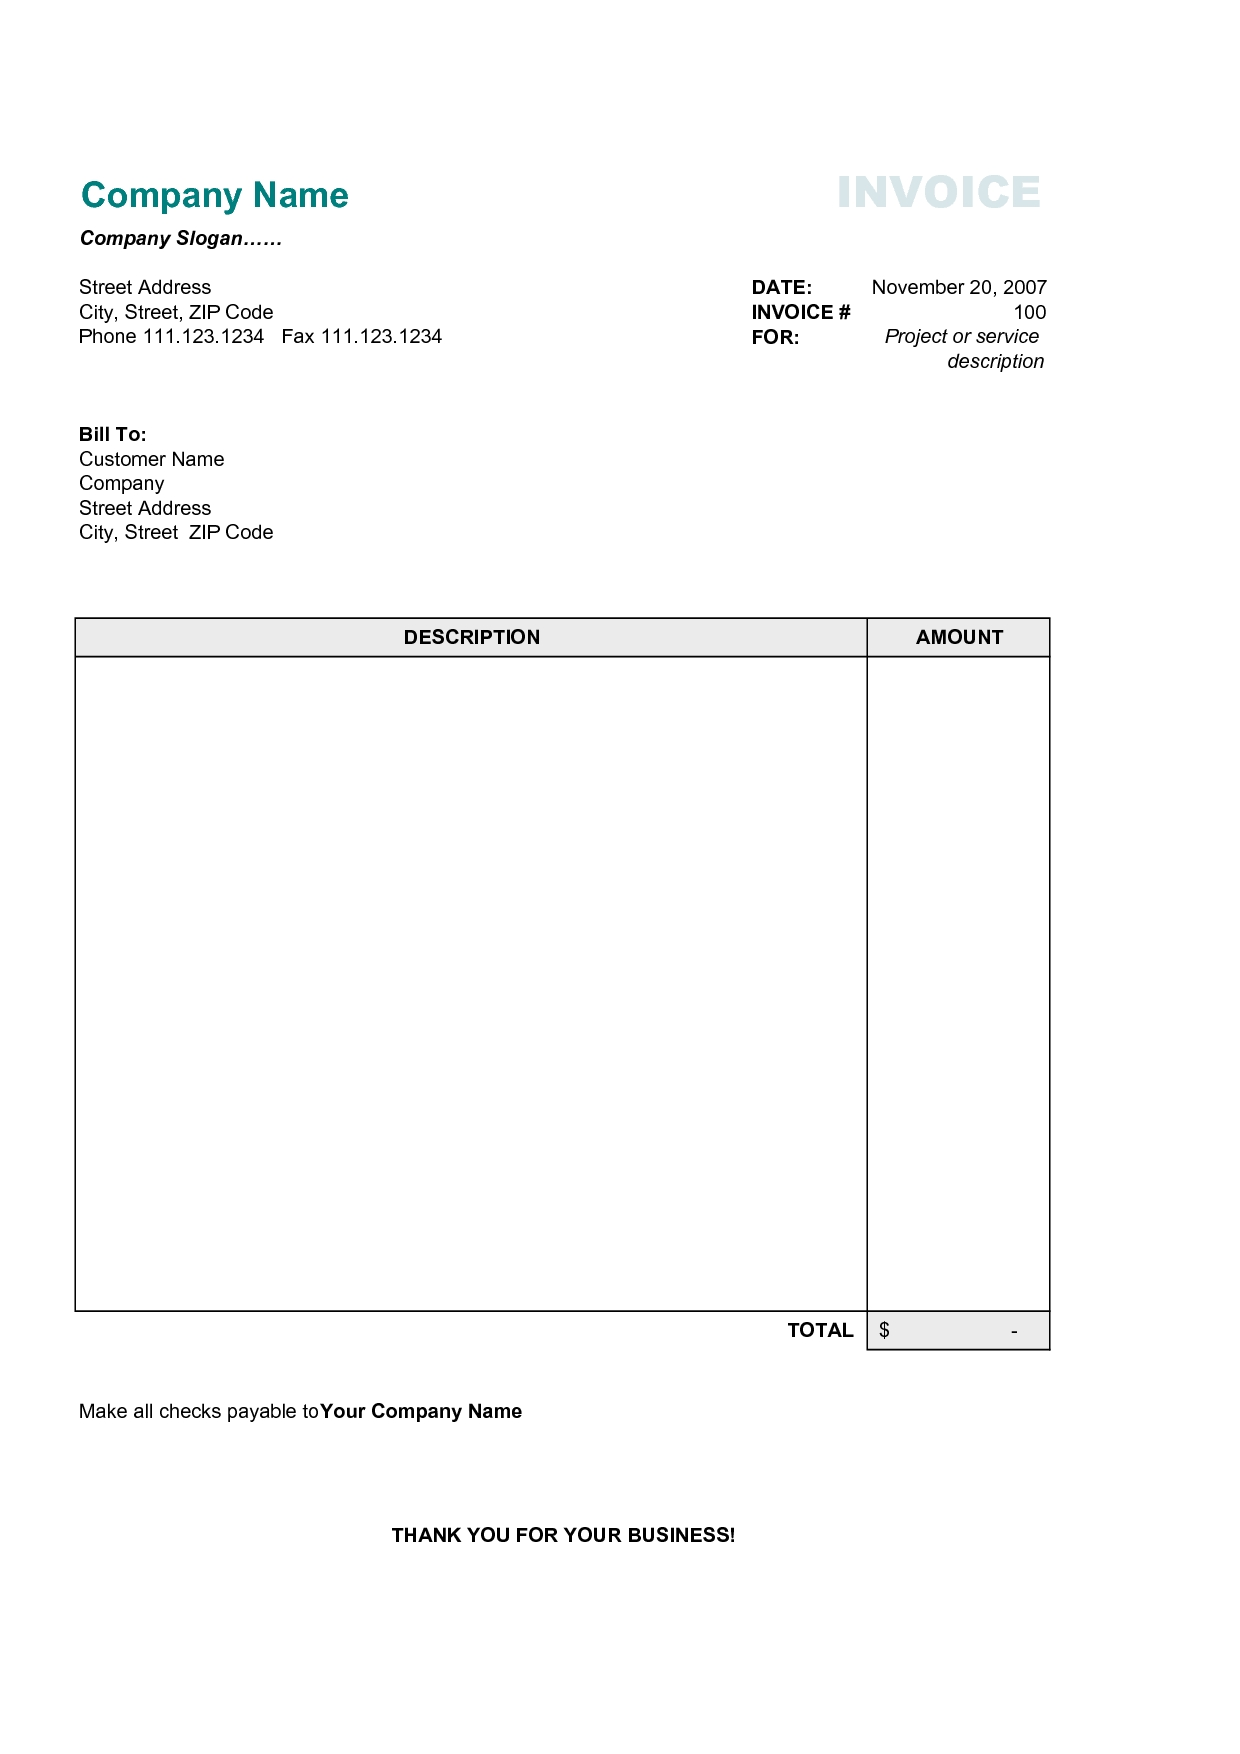 simple invoice format download – notators, Invoice examples